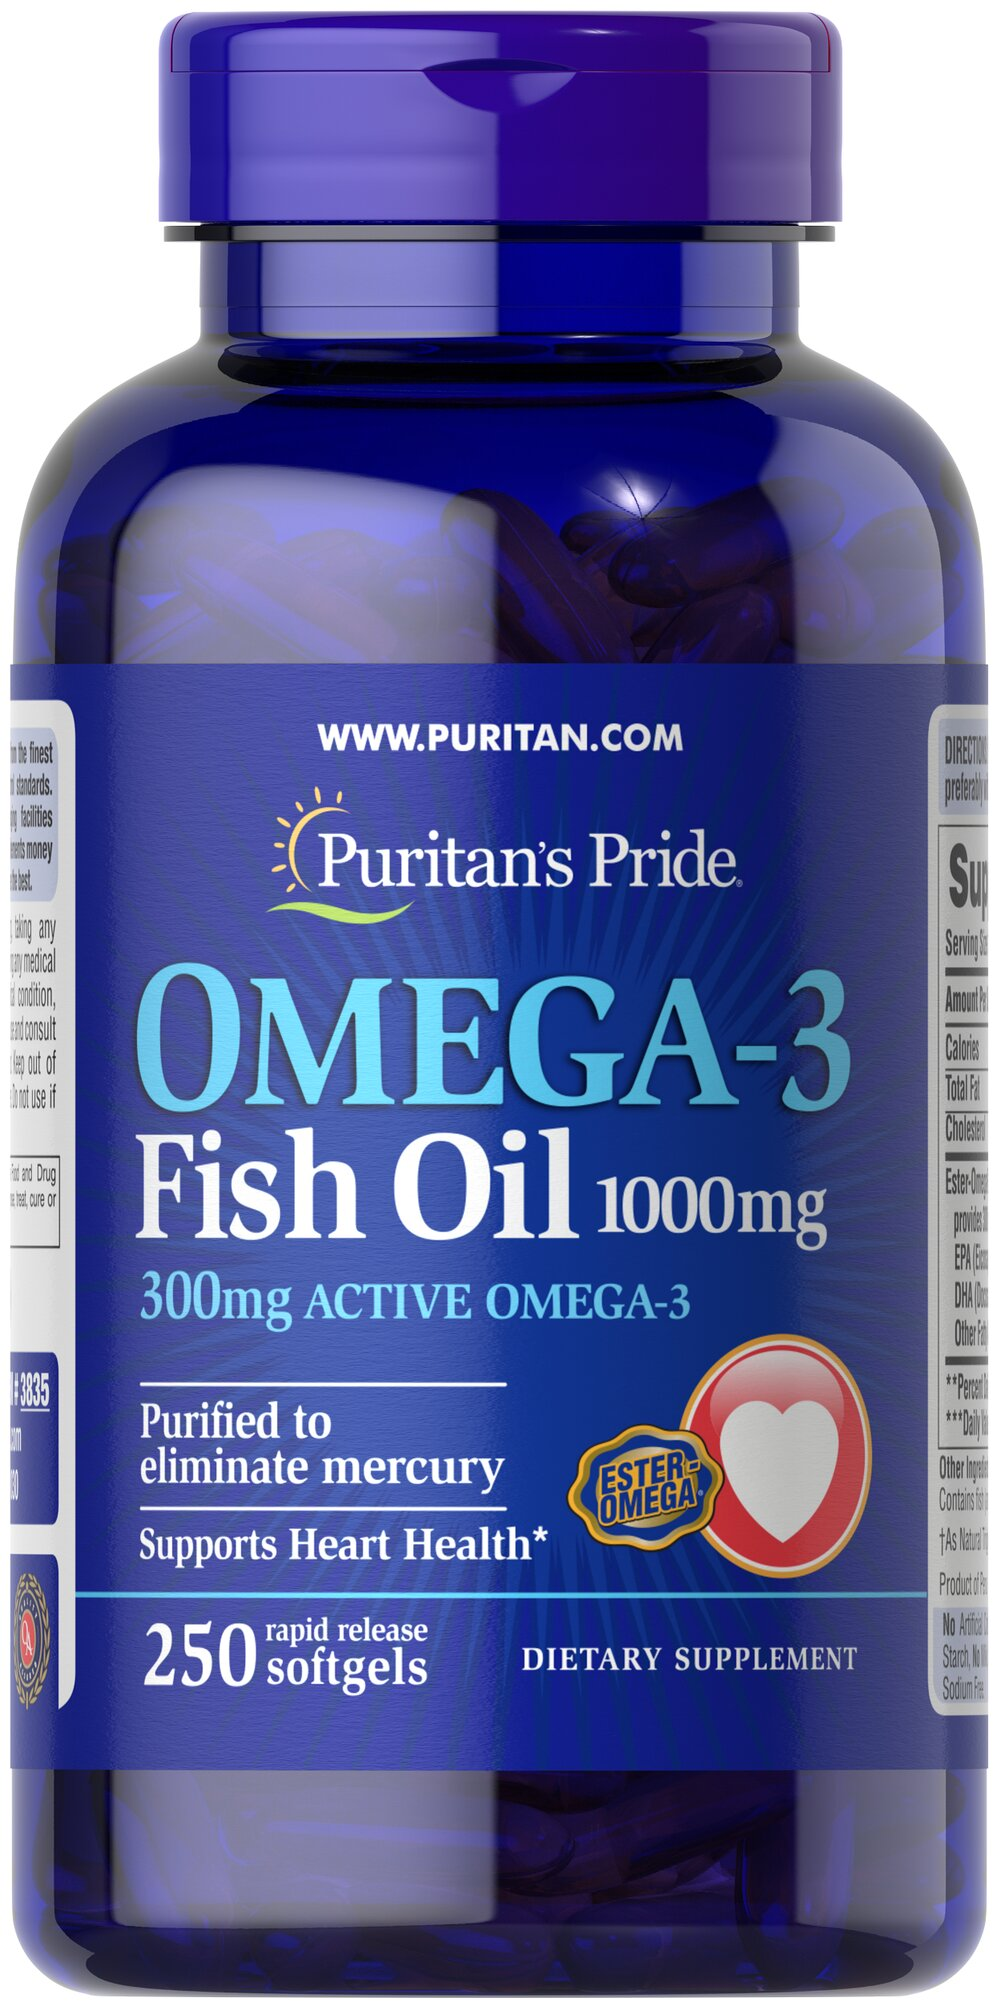 Omega 3 fish oil 1000 mg 300 mg active omega 3 250 for Fish oil 1000 mg